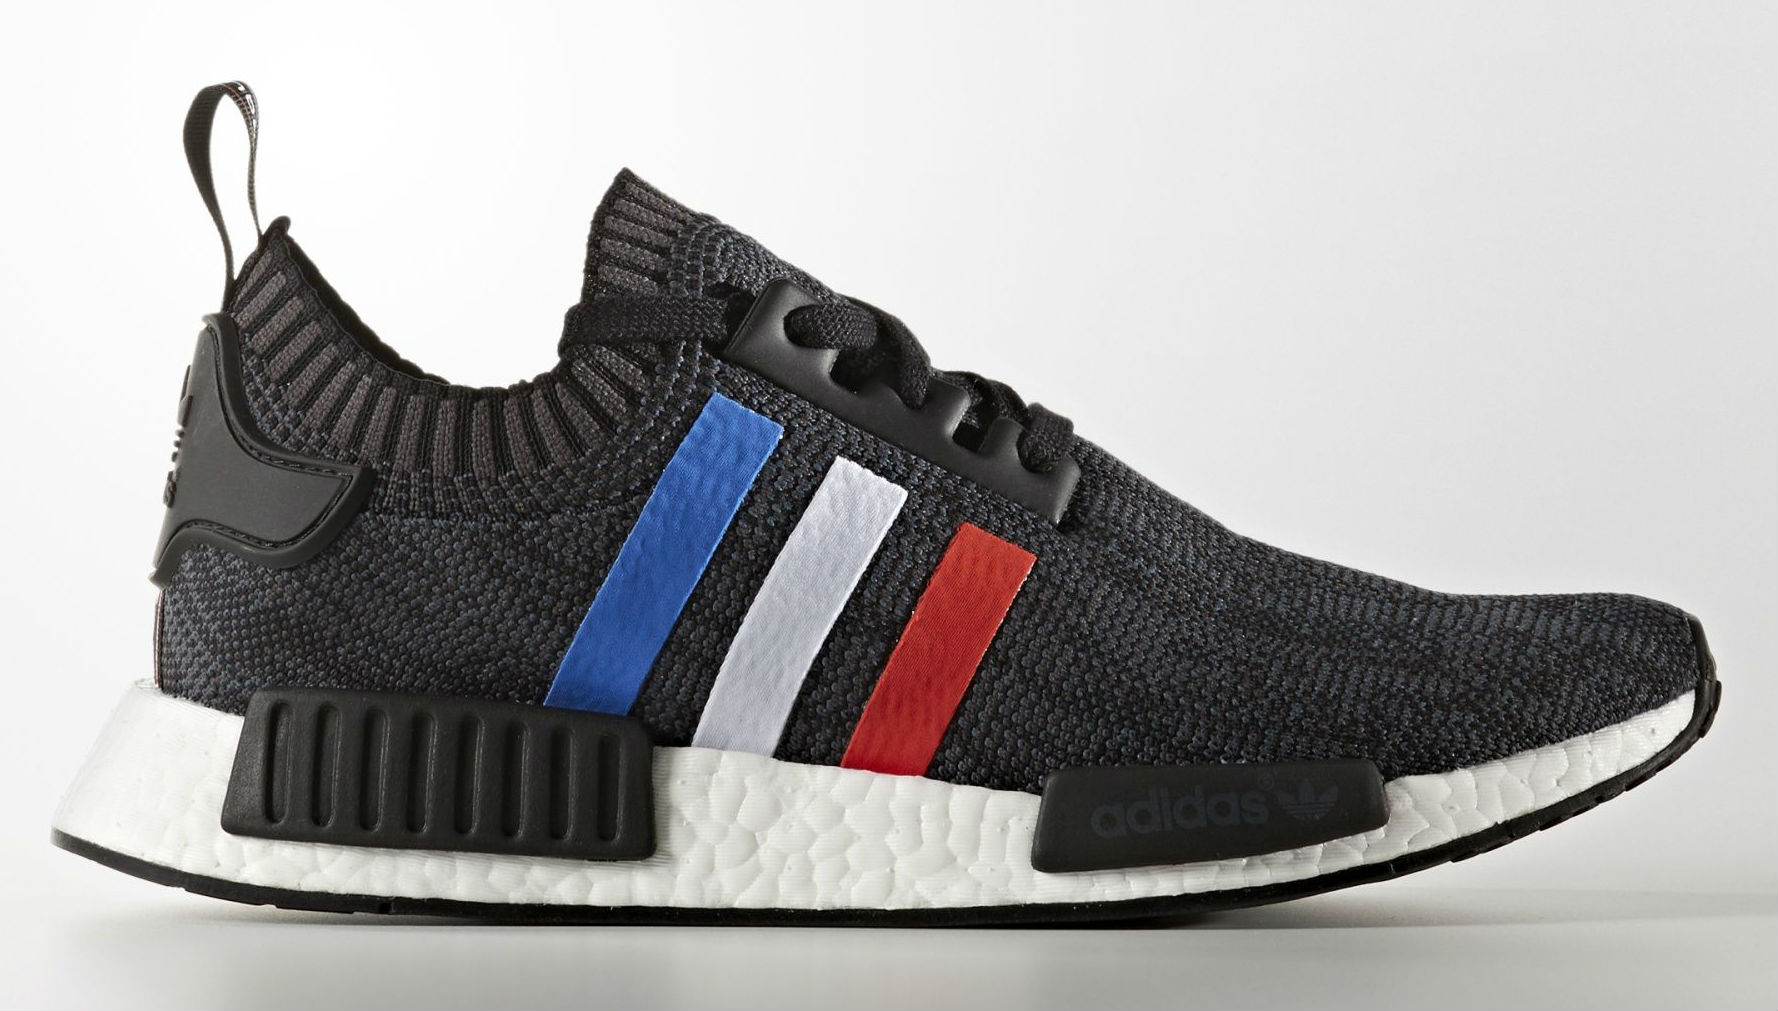 adidas nmd primeknit tricolor pack le site de la sneaker. Black Bedroom Furniture Sets. Home Design Ideas